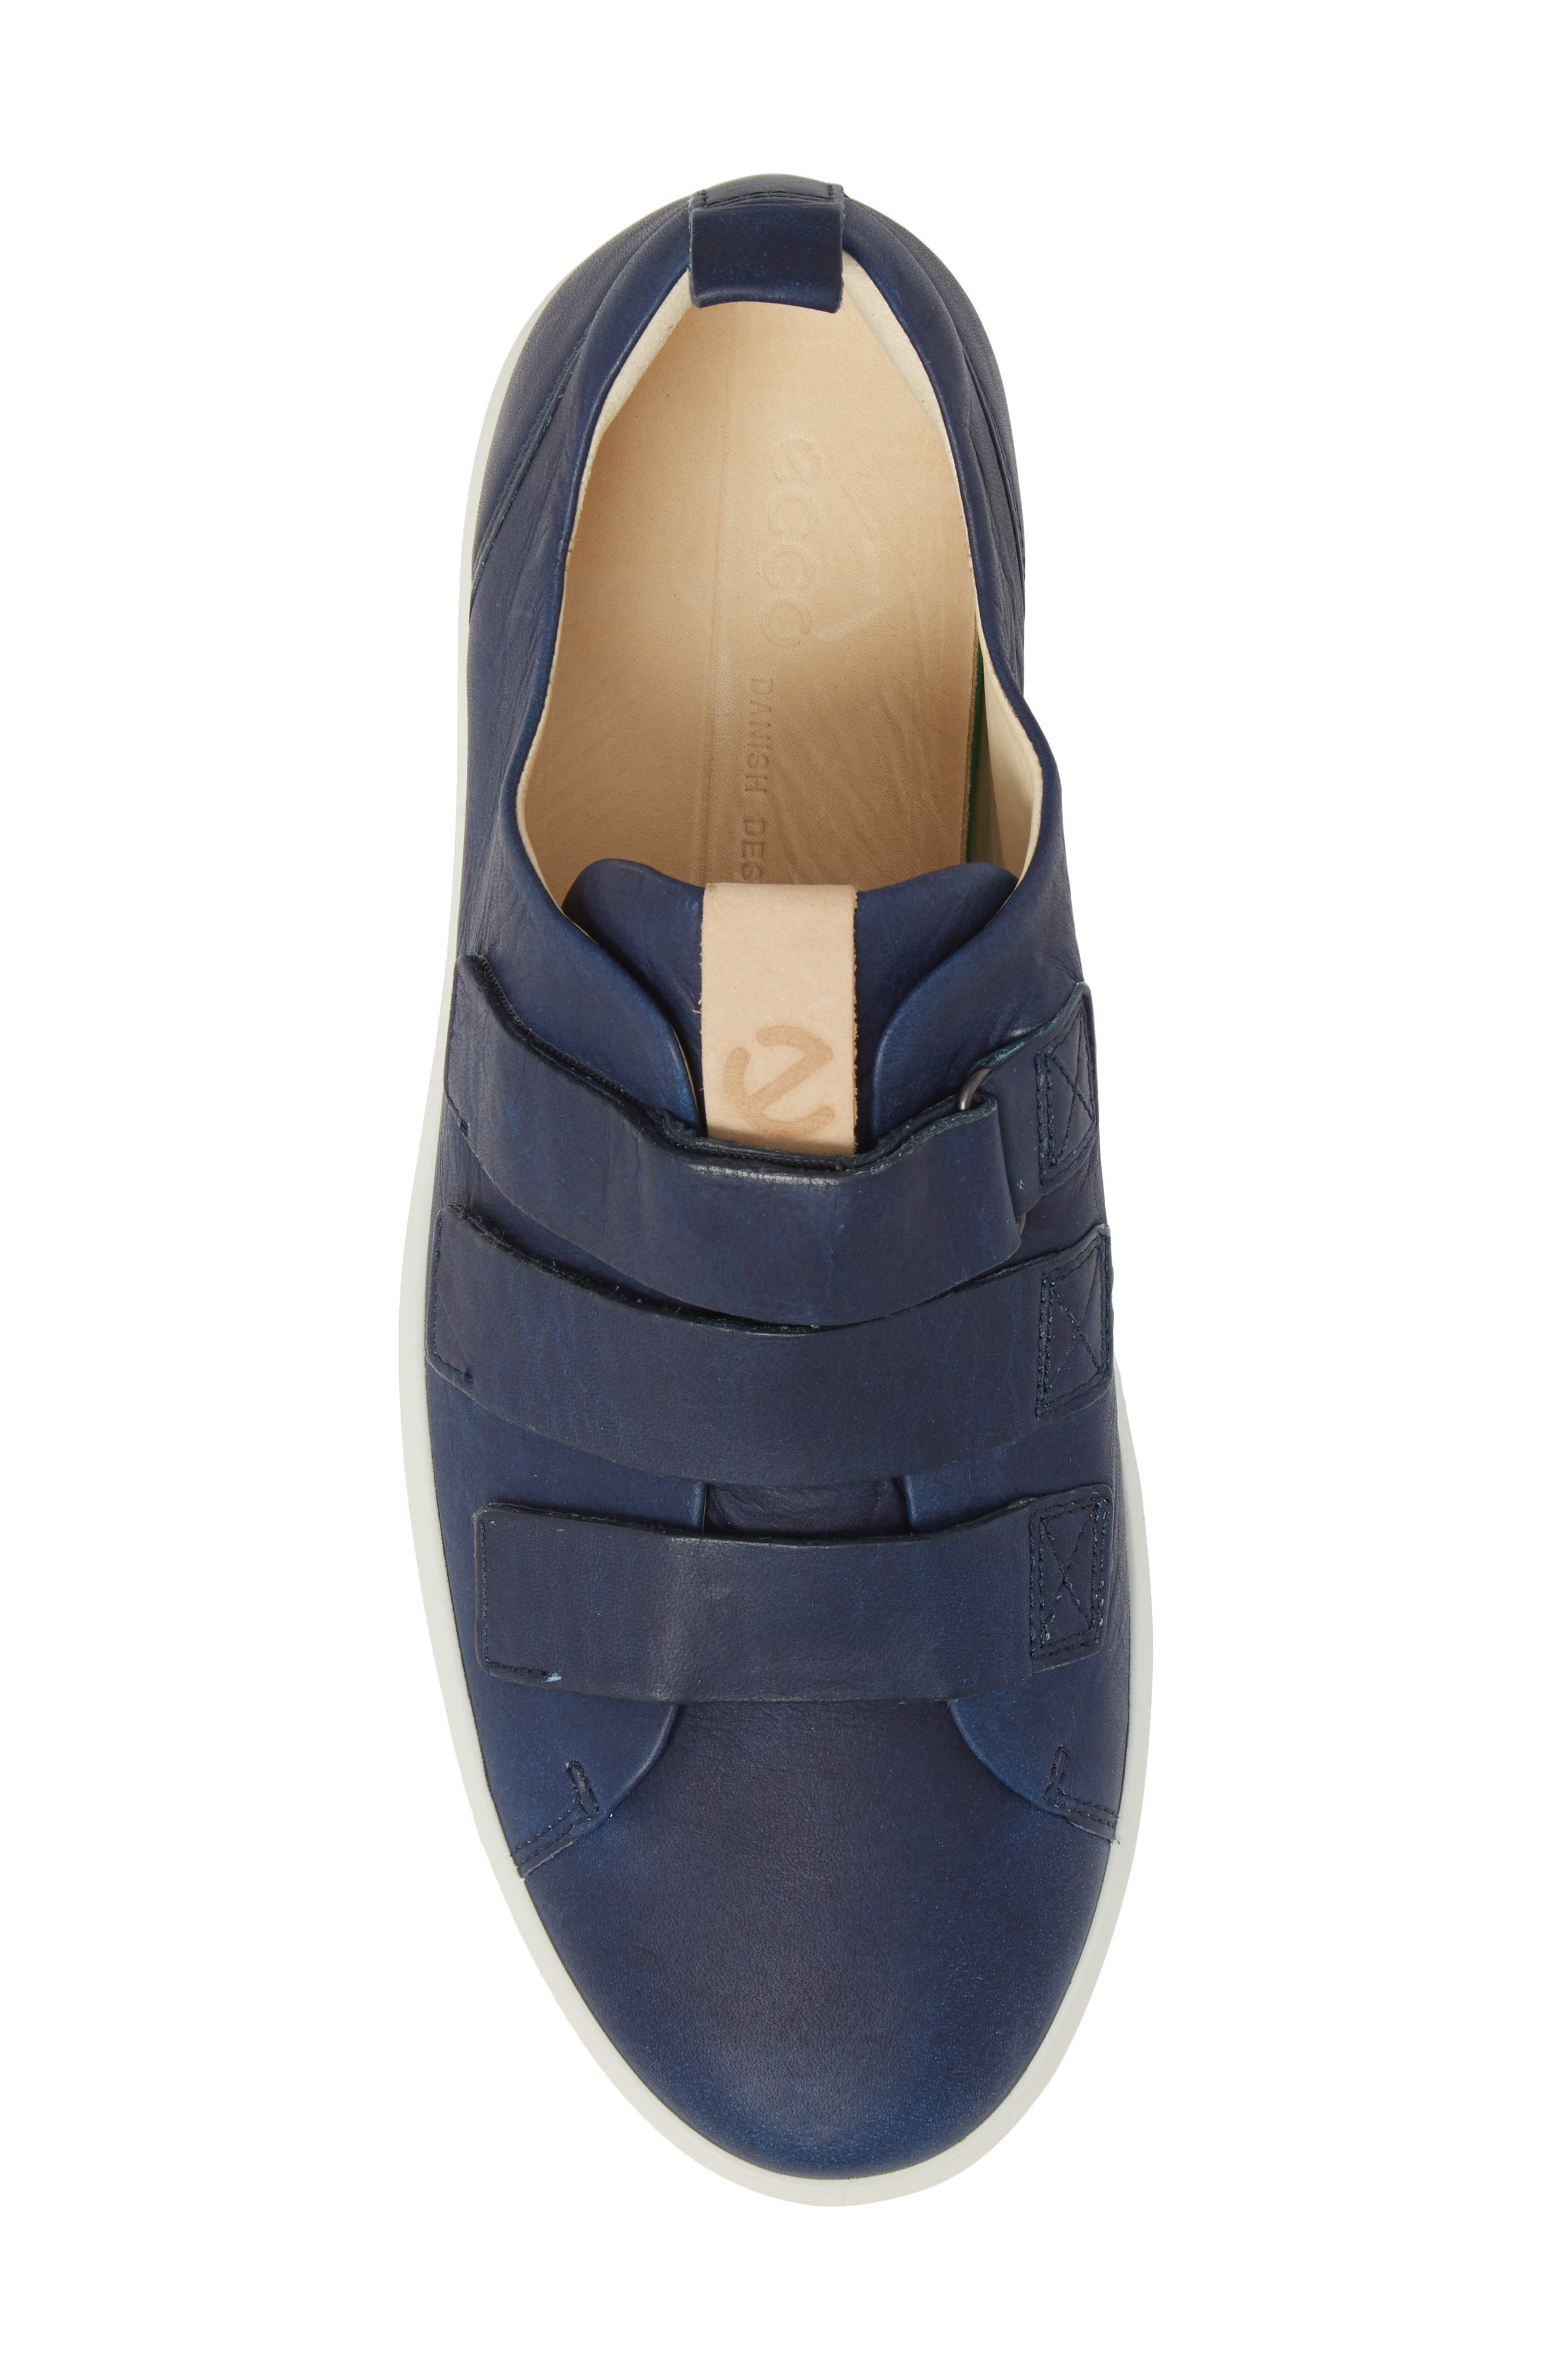 Soft 8 Strap Sneaker,                             Alternate thumbnail 5, color,                             Indigo 7 Leather